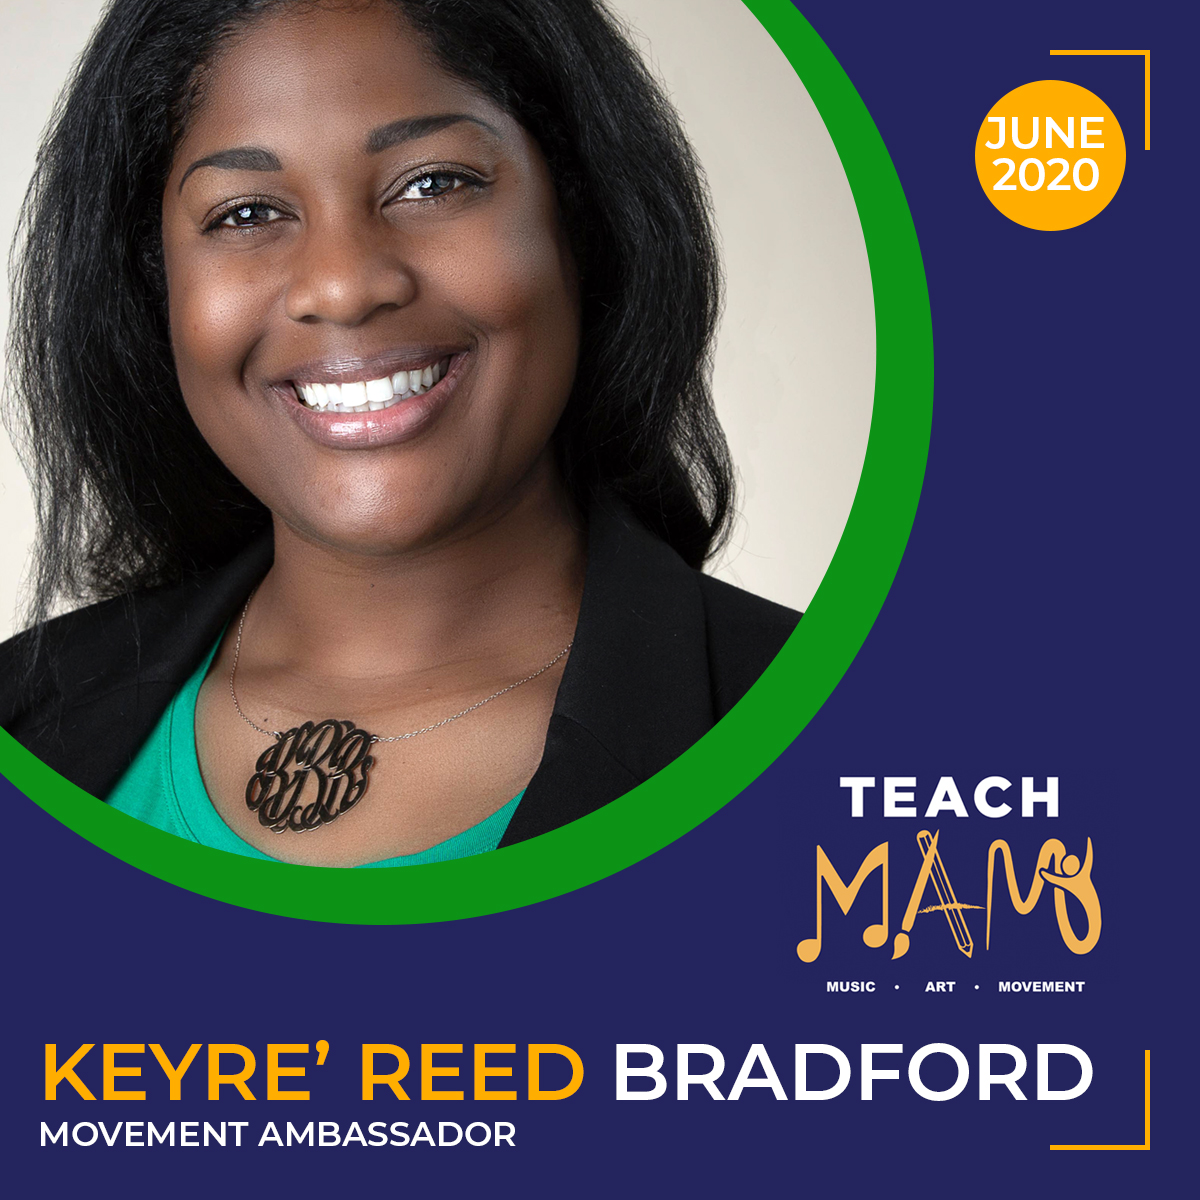 Teach MAM – Movement Ambassador Keyre' Reed Bradford